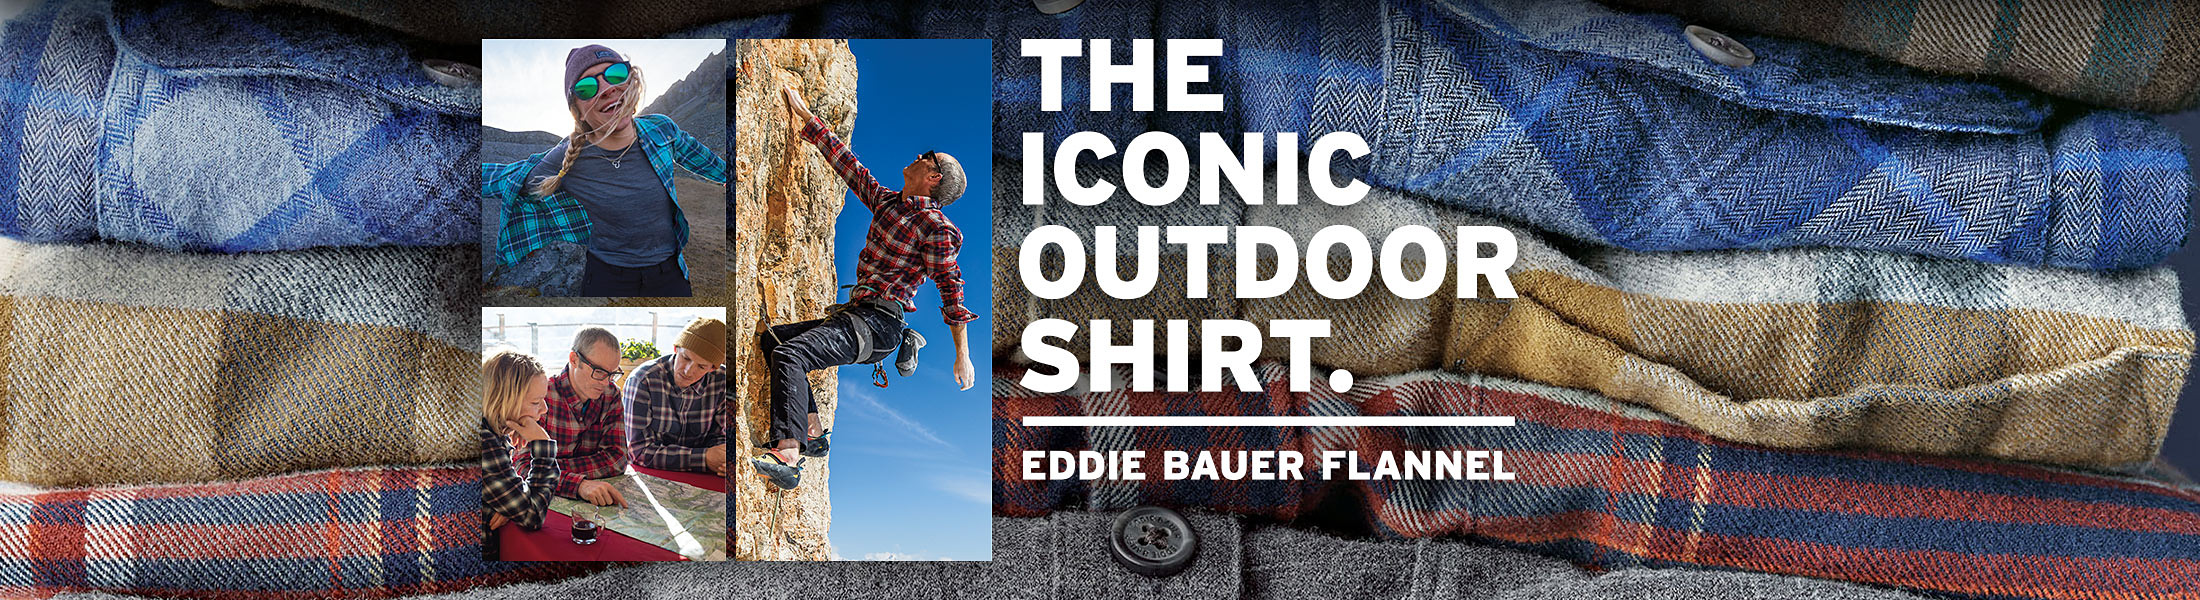 Eddie Bauerg athletes Ben Ditto and Lexi duPont, and guide Caroline George wearing Eddie Bauer flannel shirts